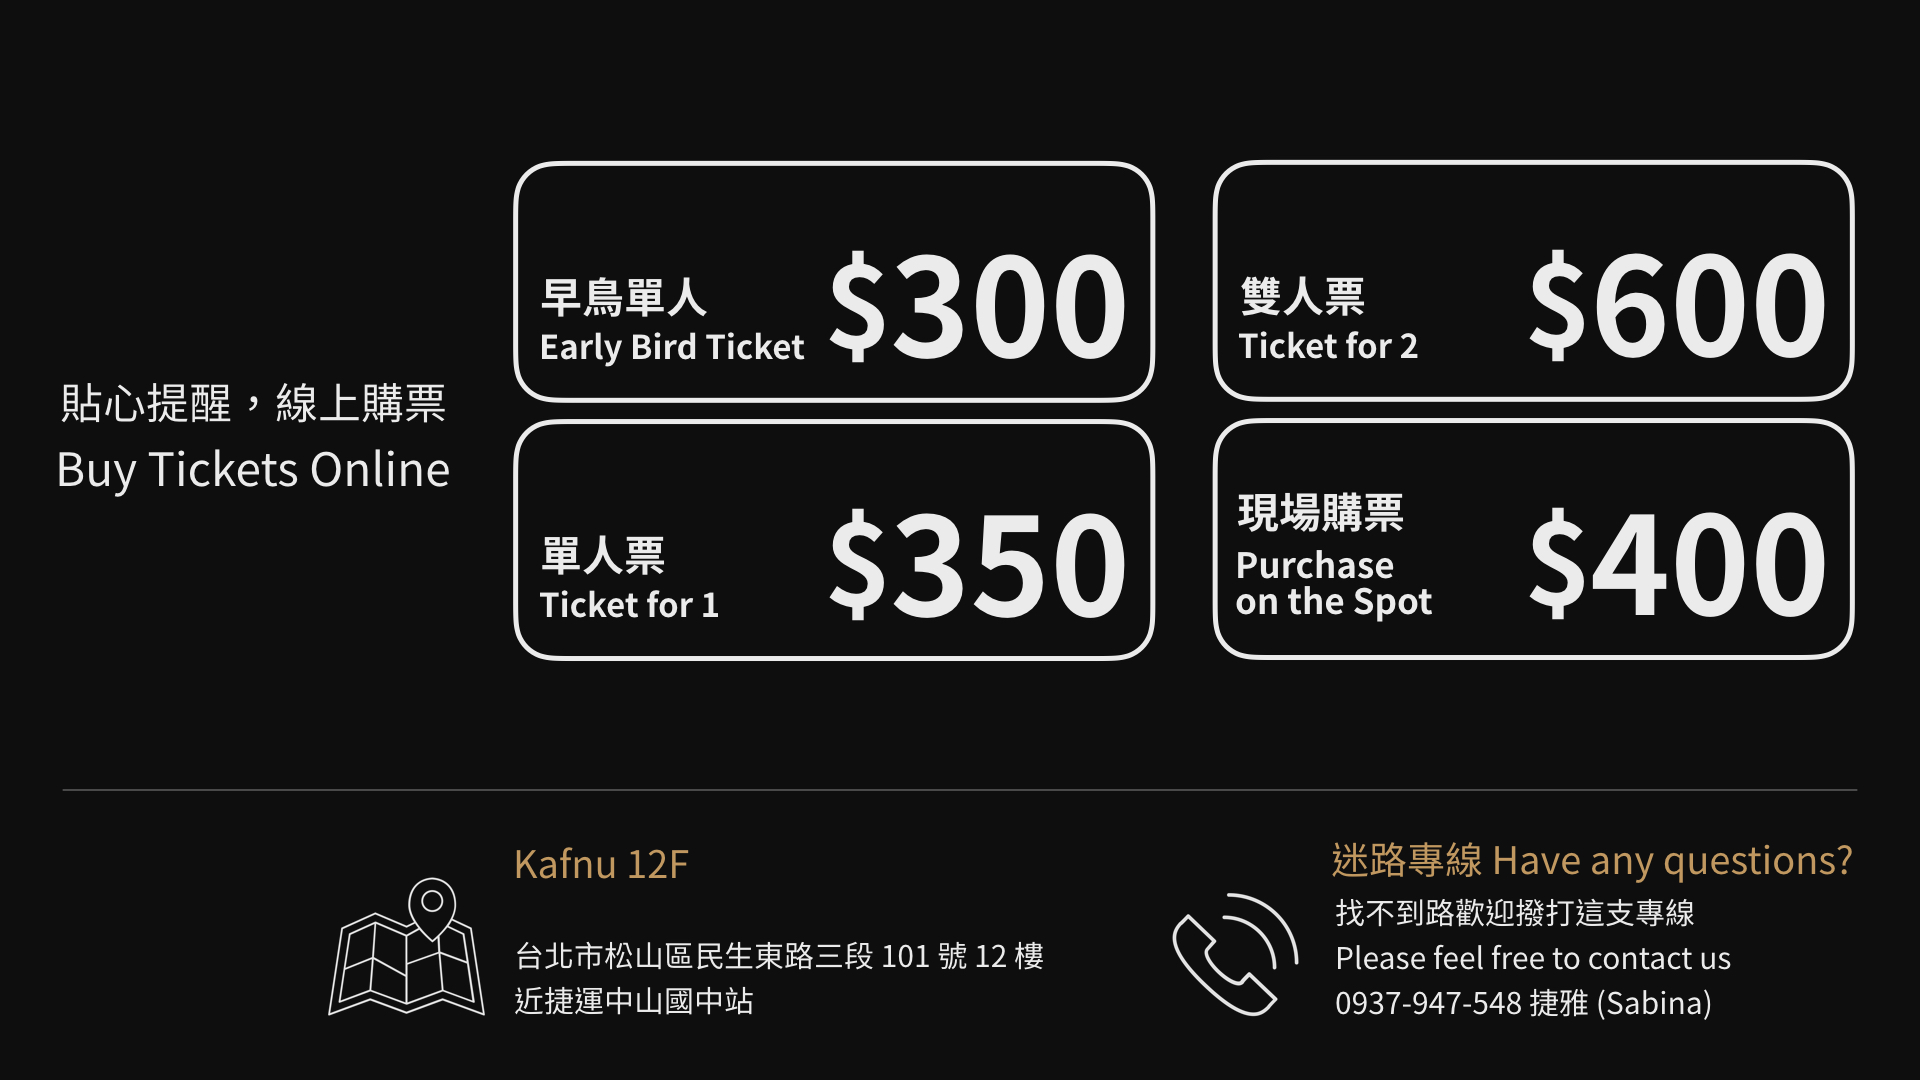 BFAevent.en|ticket price.jpeg